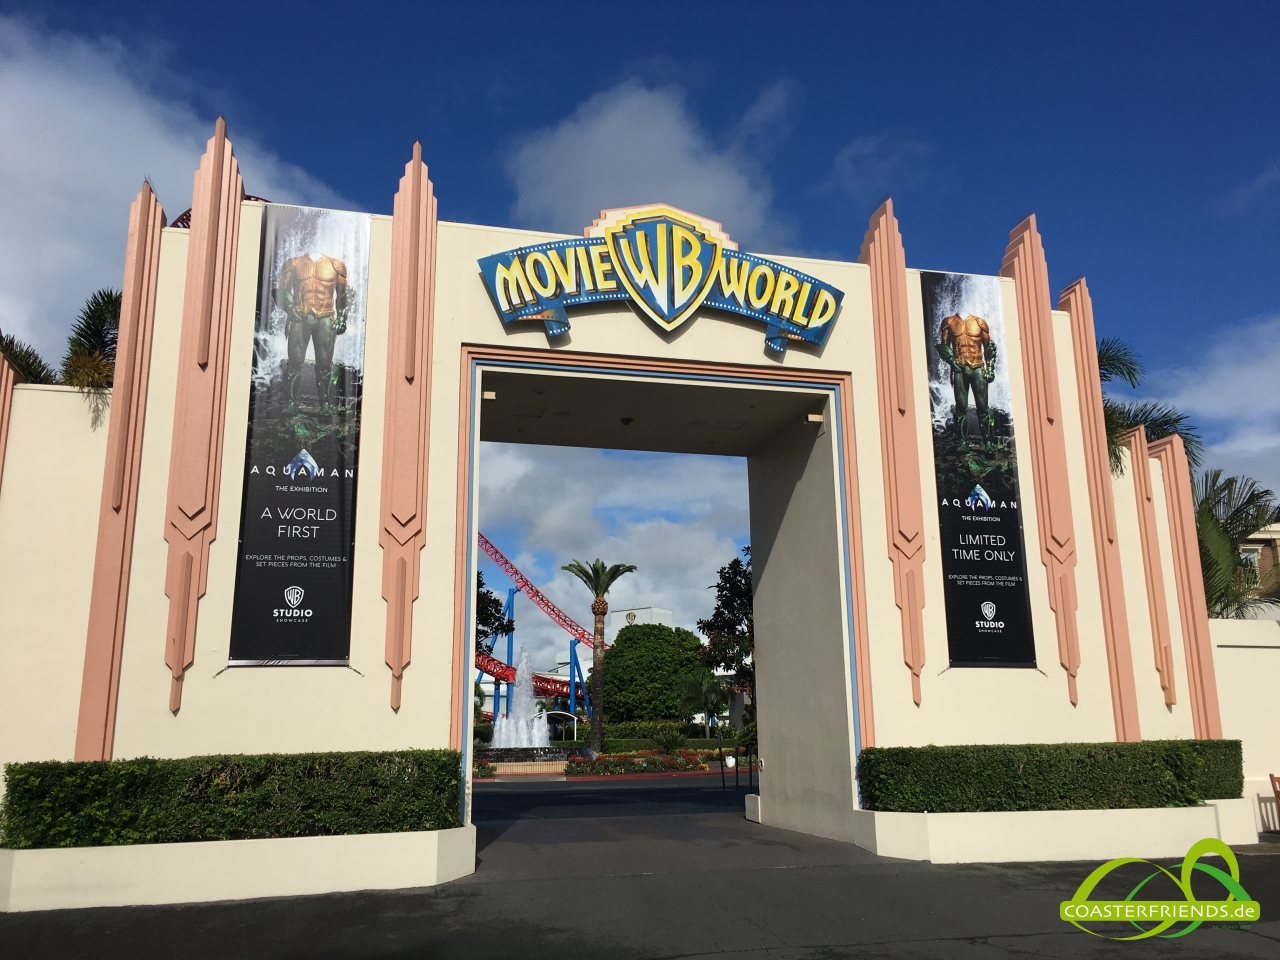 Australien - https://coasterfriends.de/joomla//images/pcp_parkdetails/australien/o2986_warner_bros._movie_world/content2.jpg